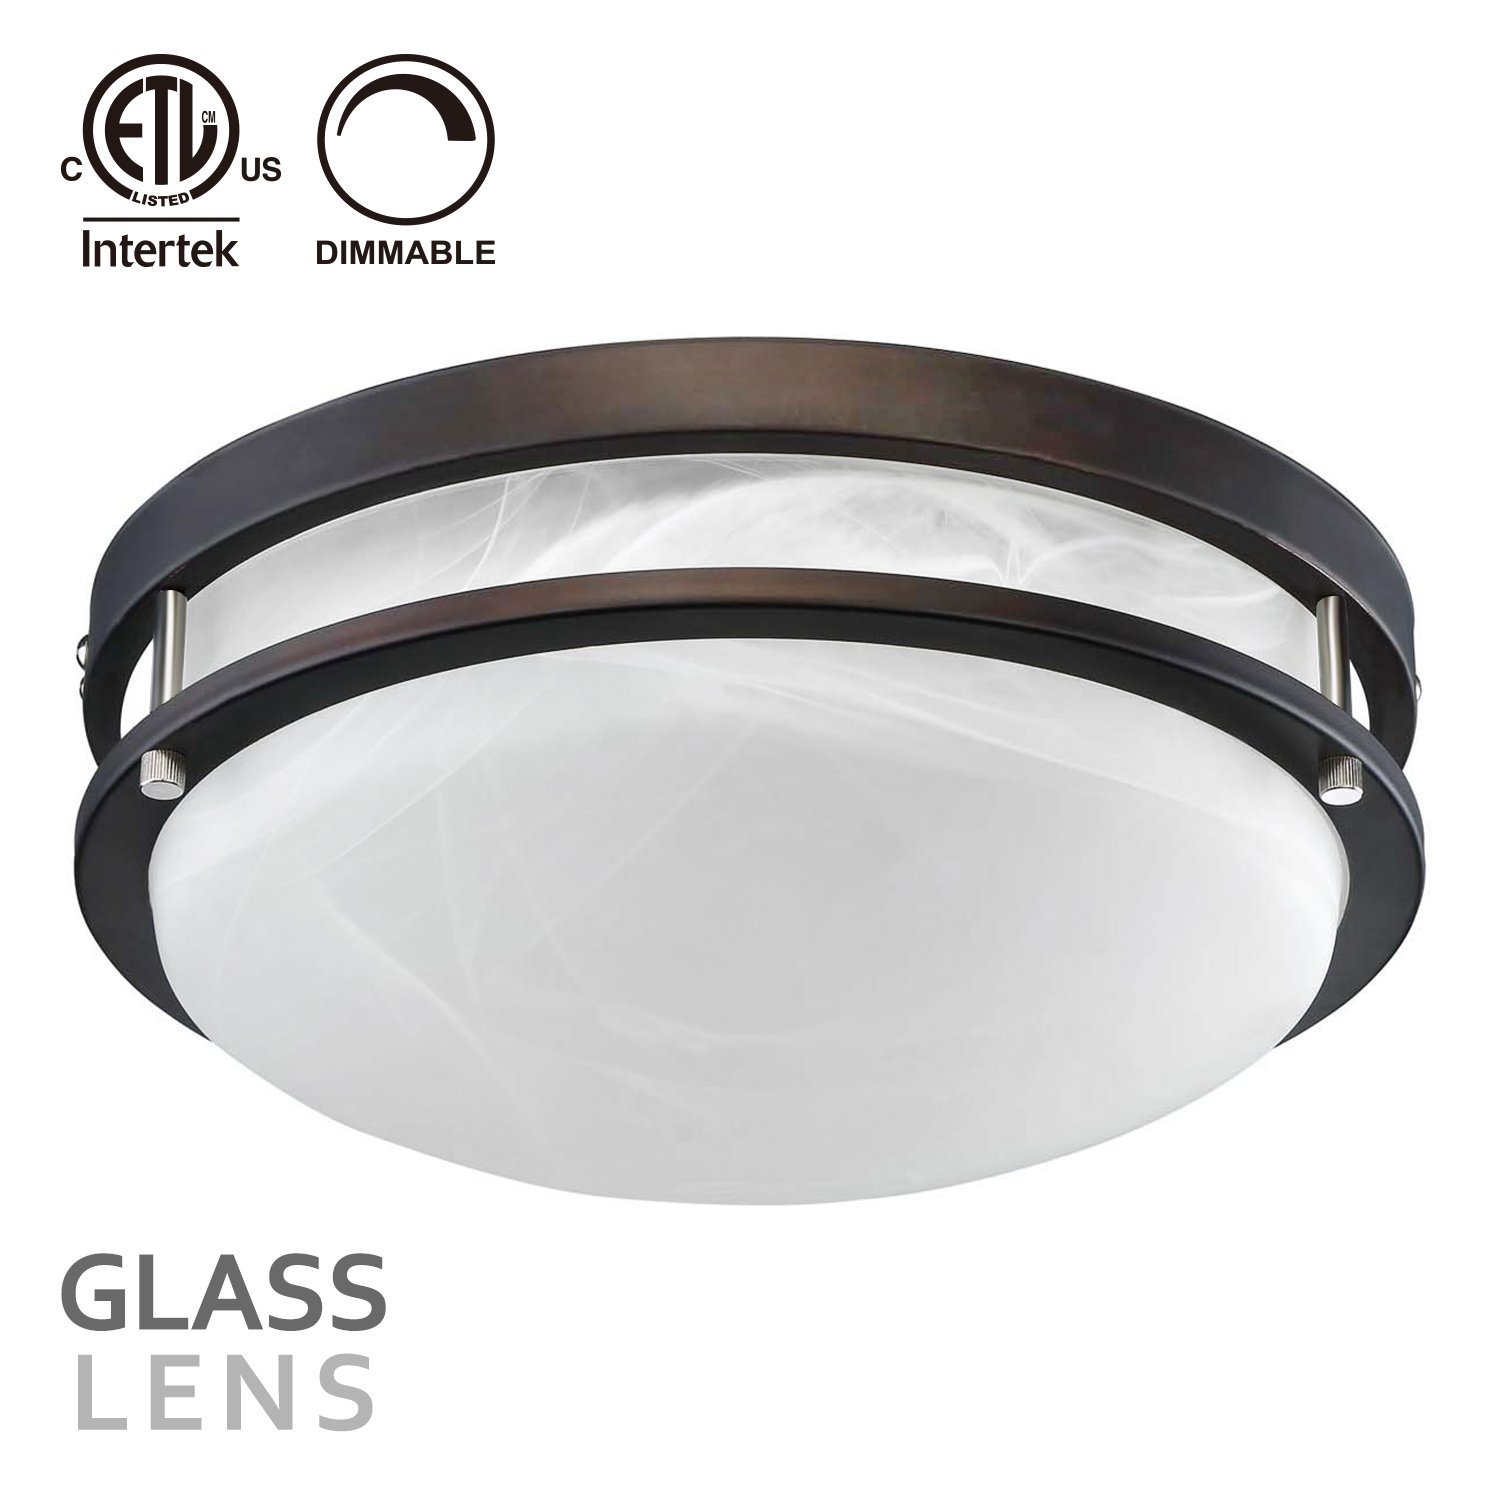 LEONLITE 12 Inch Glass Lens LED Flush Mount Ceiling Light, 18W(130W equivalent) 1200lm, 3000K Warm White, Oil Rubbed Bronze Finish for Living Room/Corridor/Hallway/Kitchen/Stairways